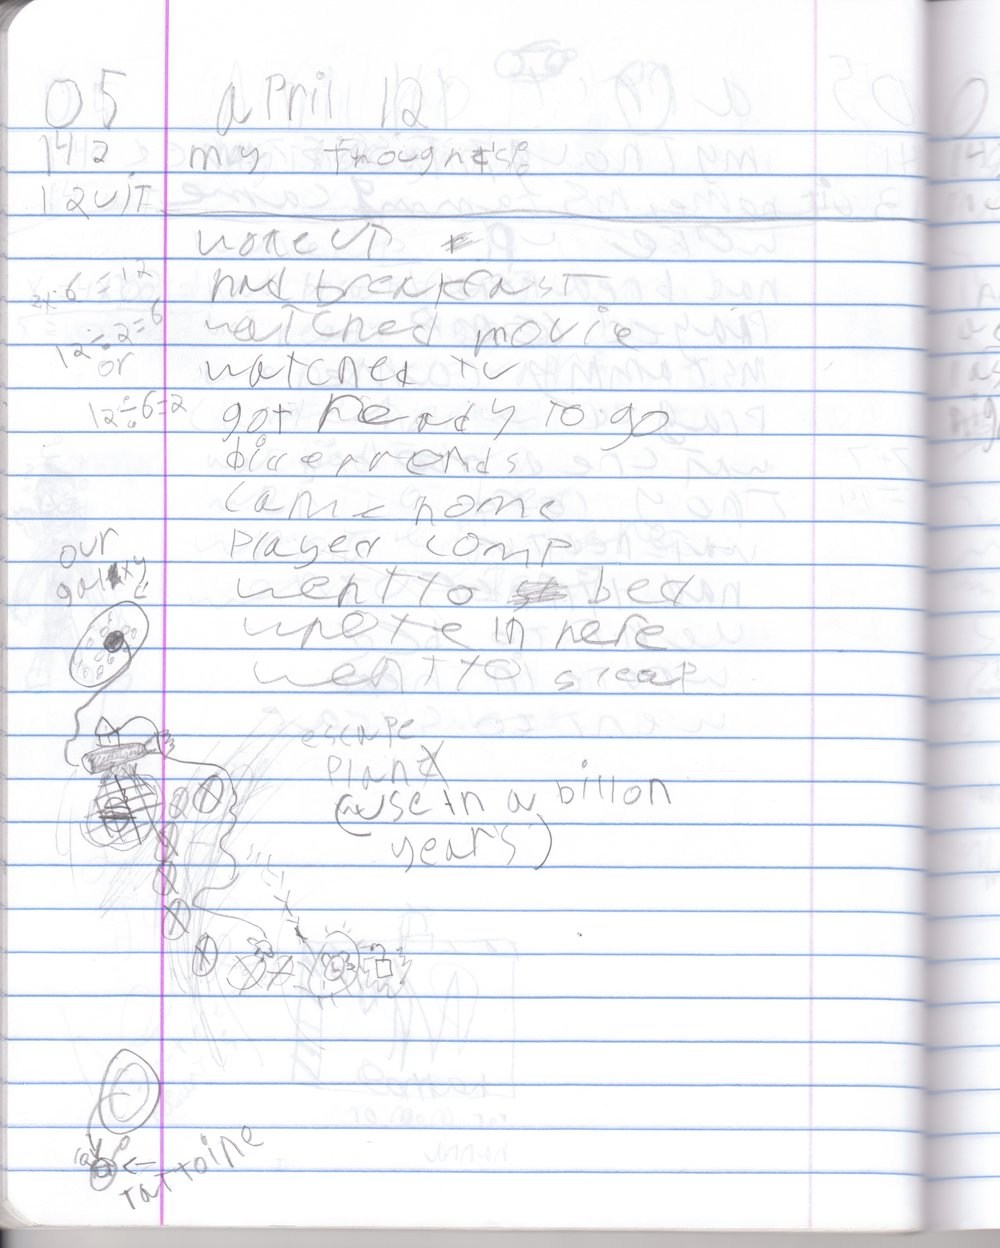 my first diary-log_Page_184.jpg